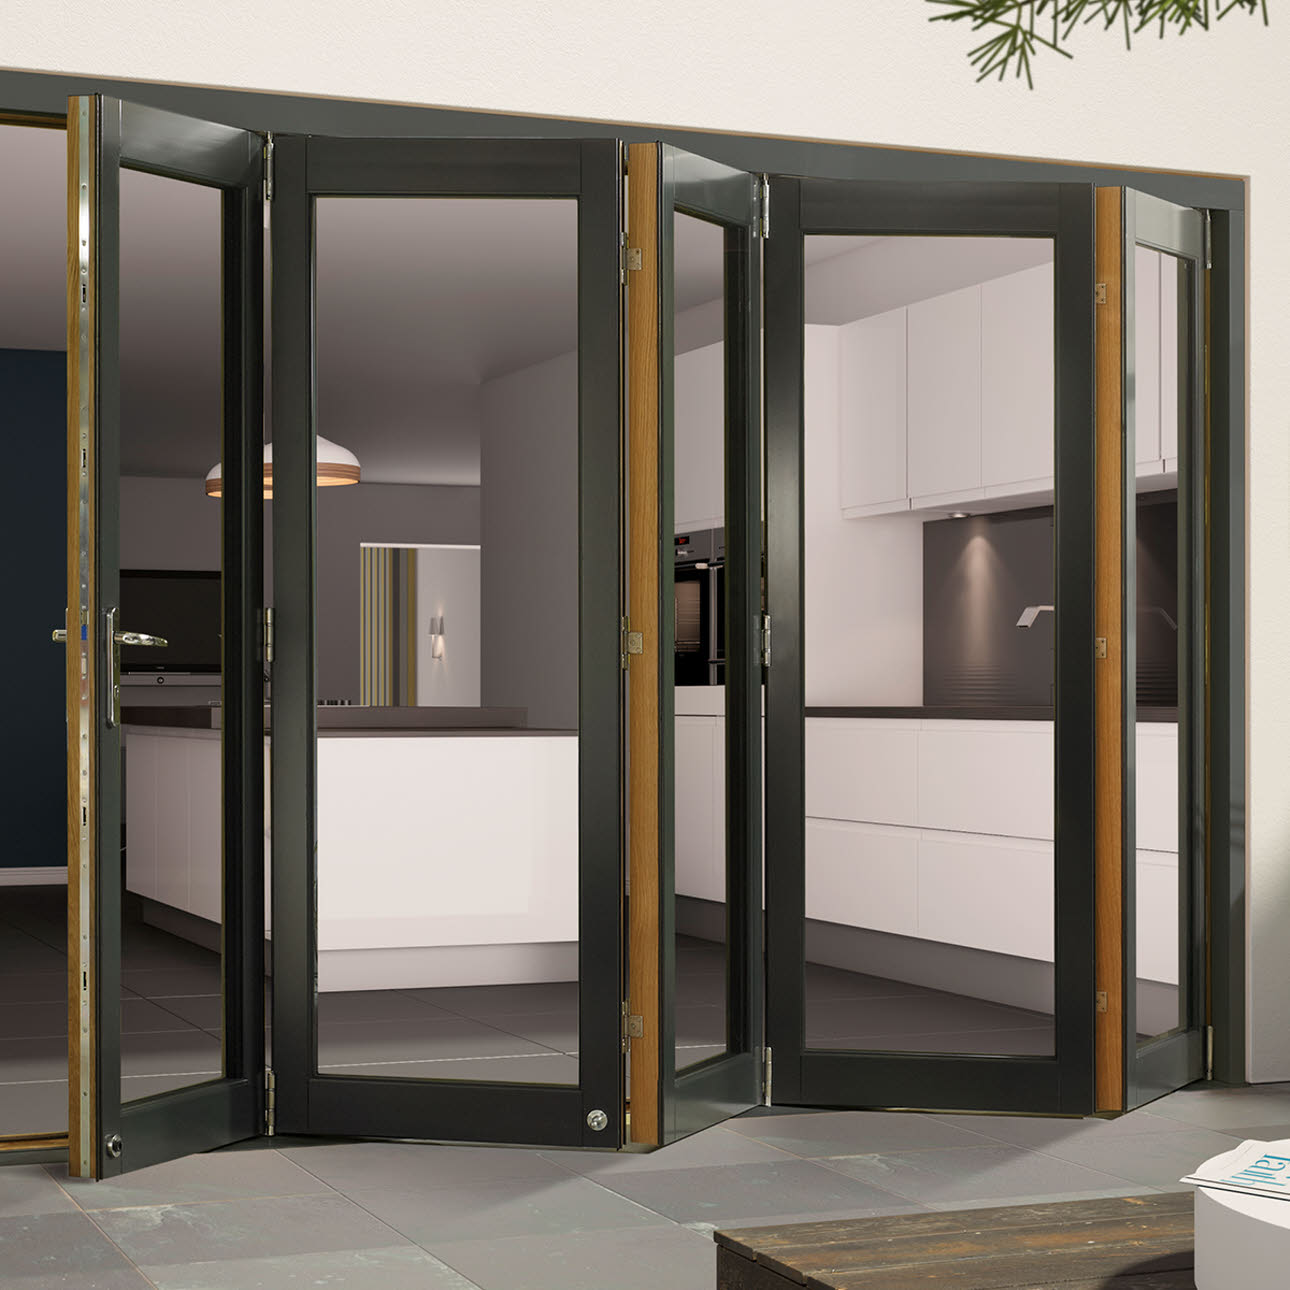 External aluminium clad folding doors